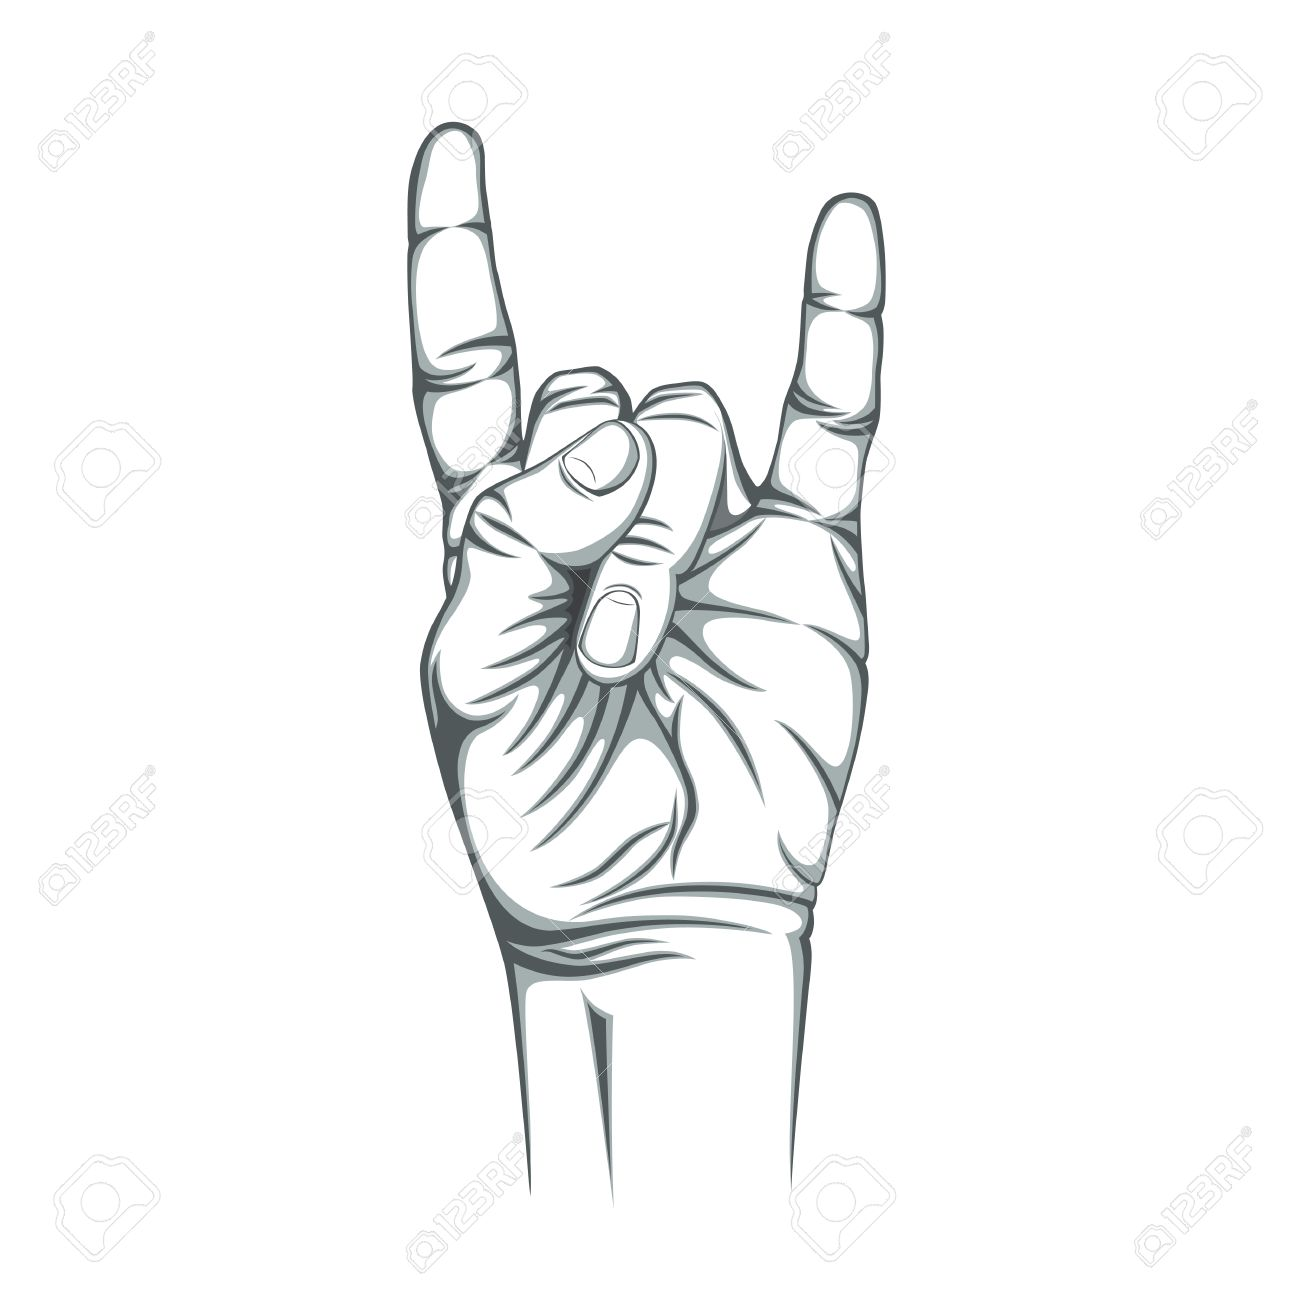 1300x1300 Rock N Roll Sign, Isolated On White Background. Hand. Vector